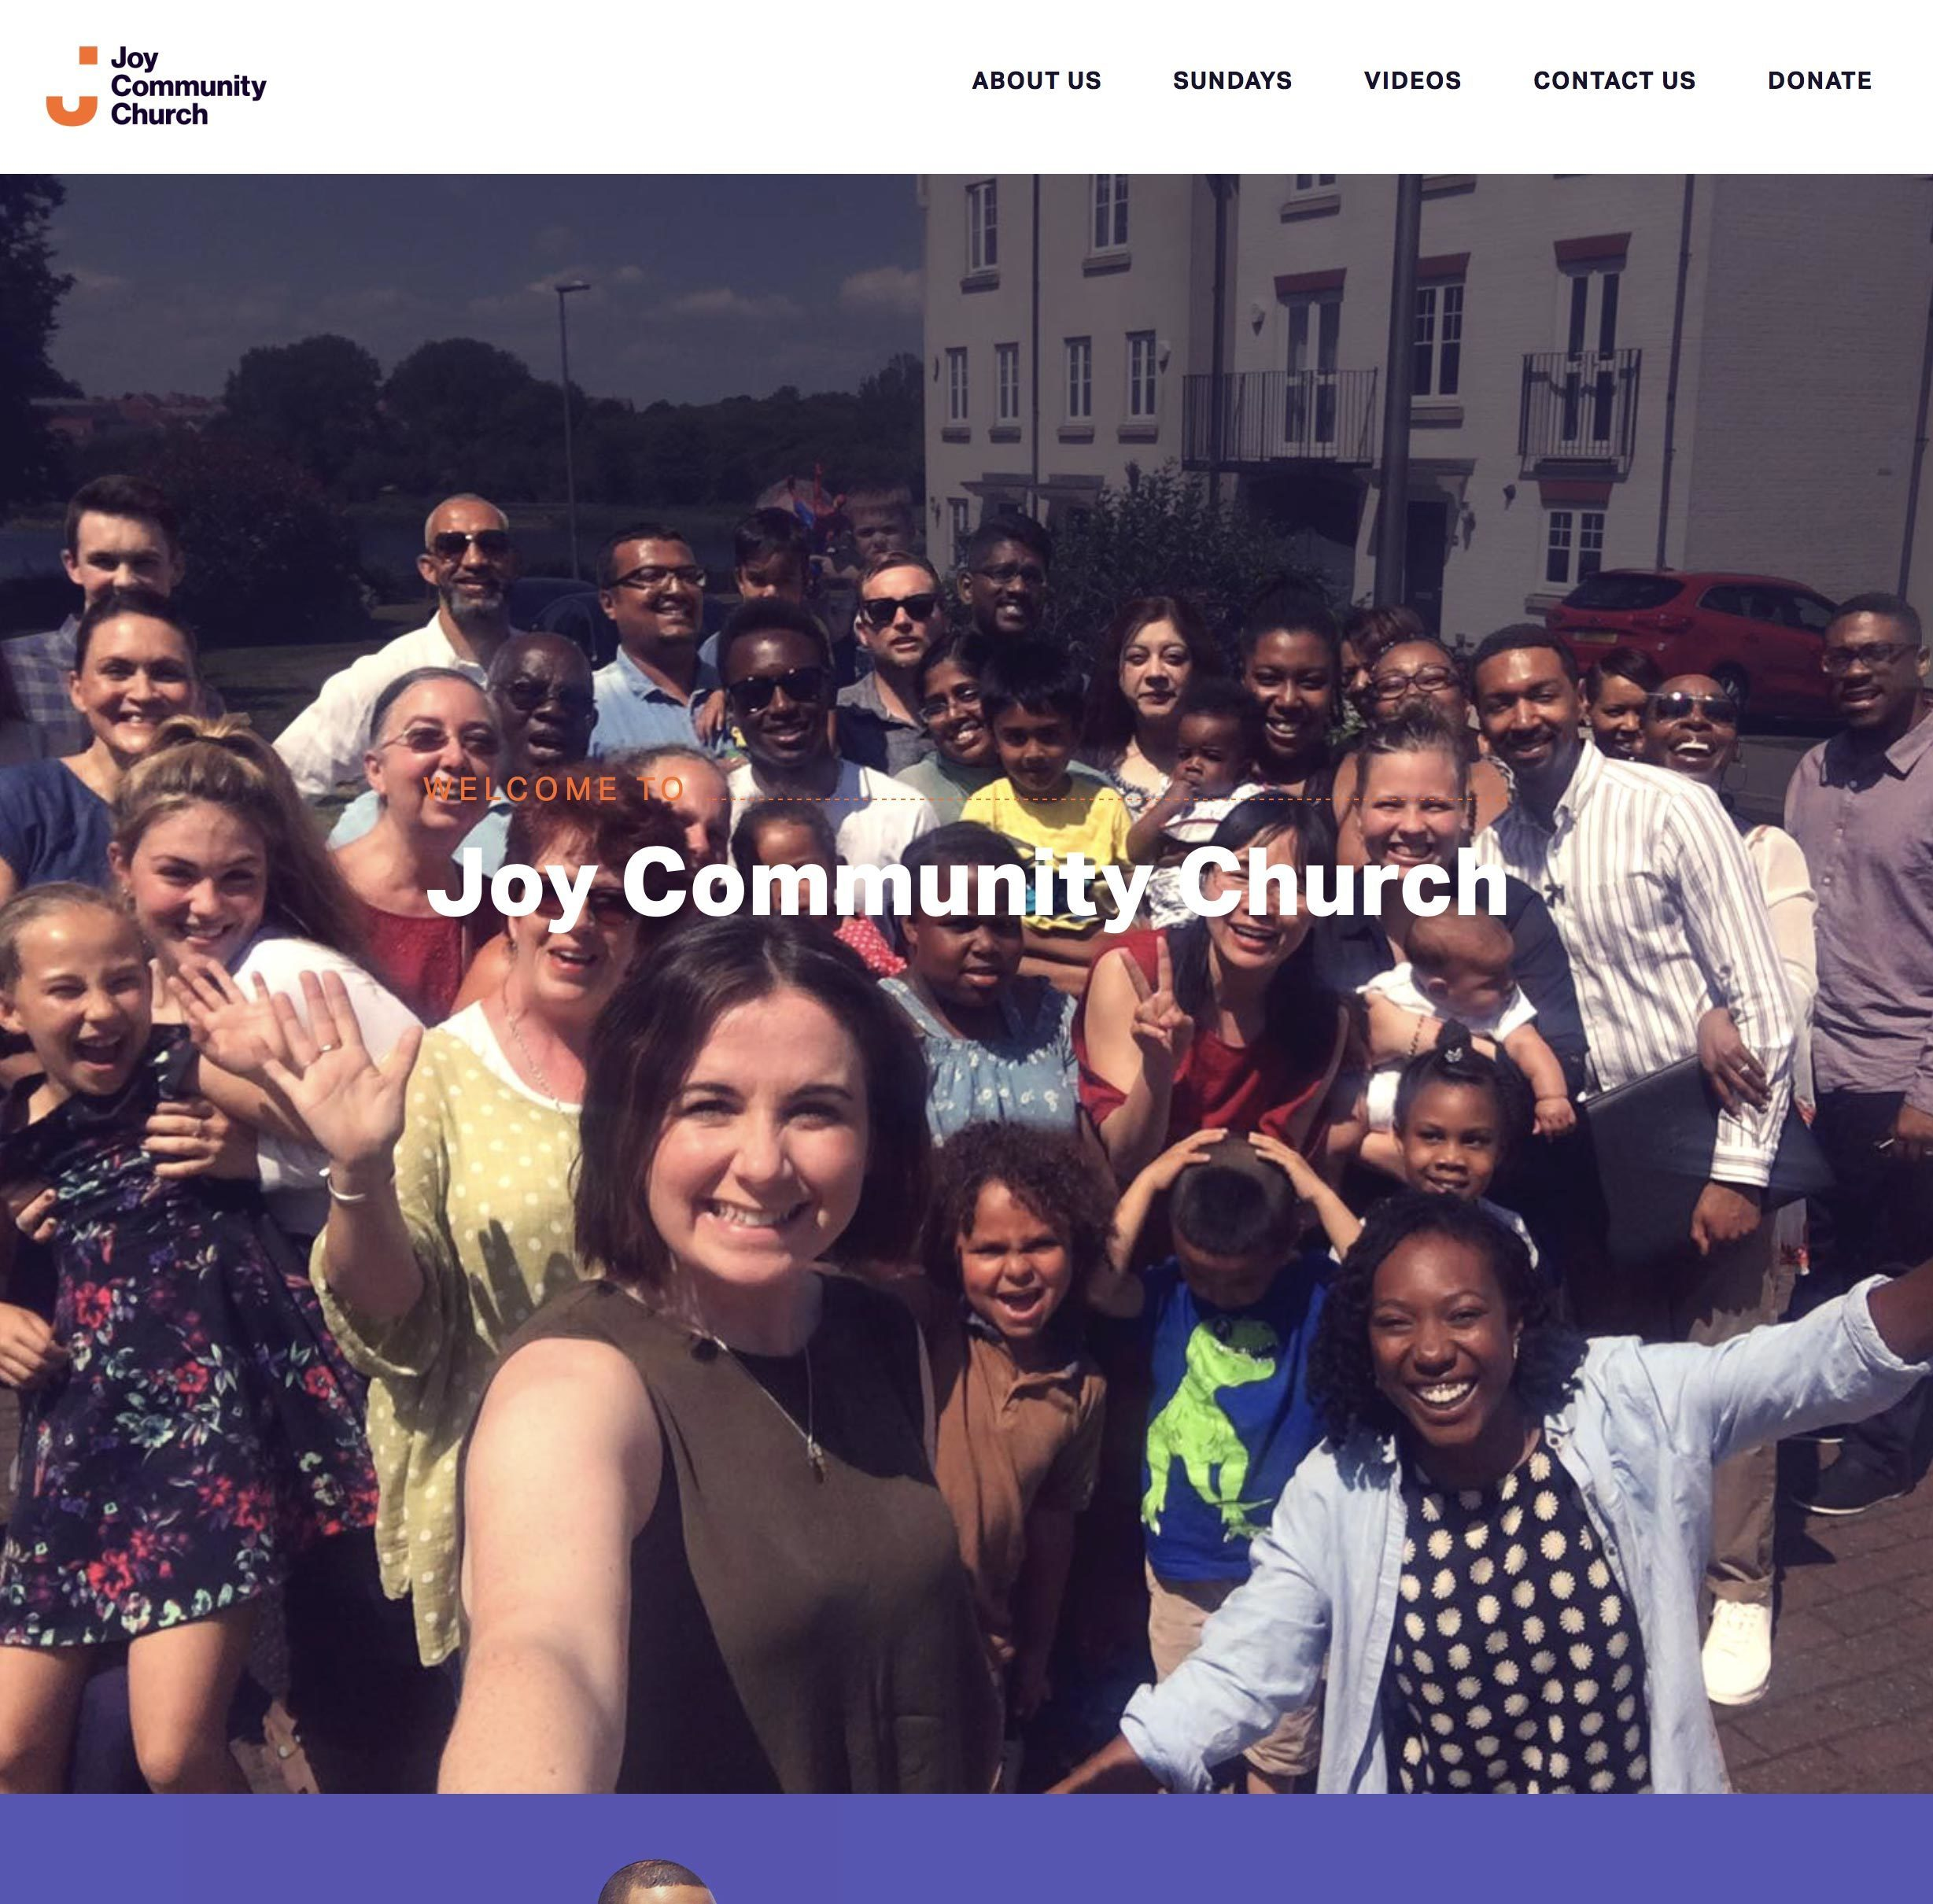 joy-community-church-large.jpg